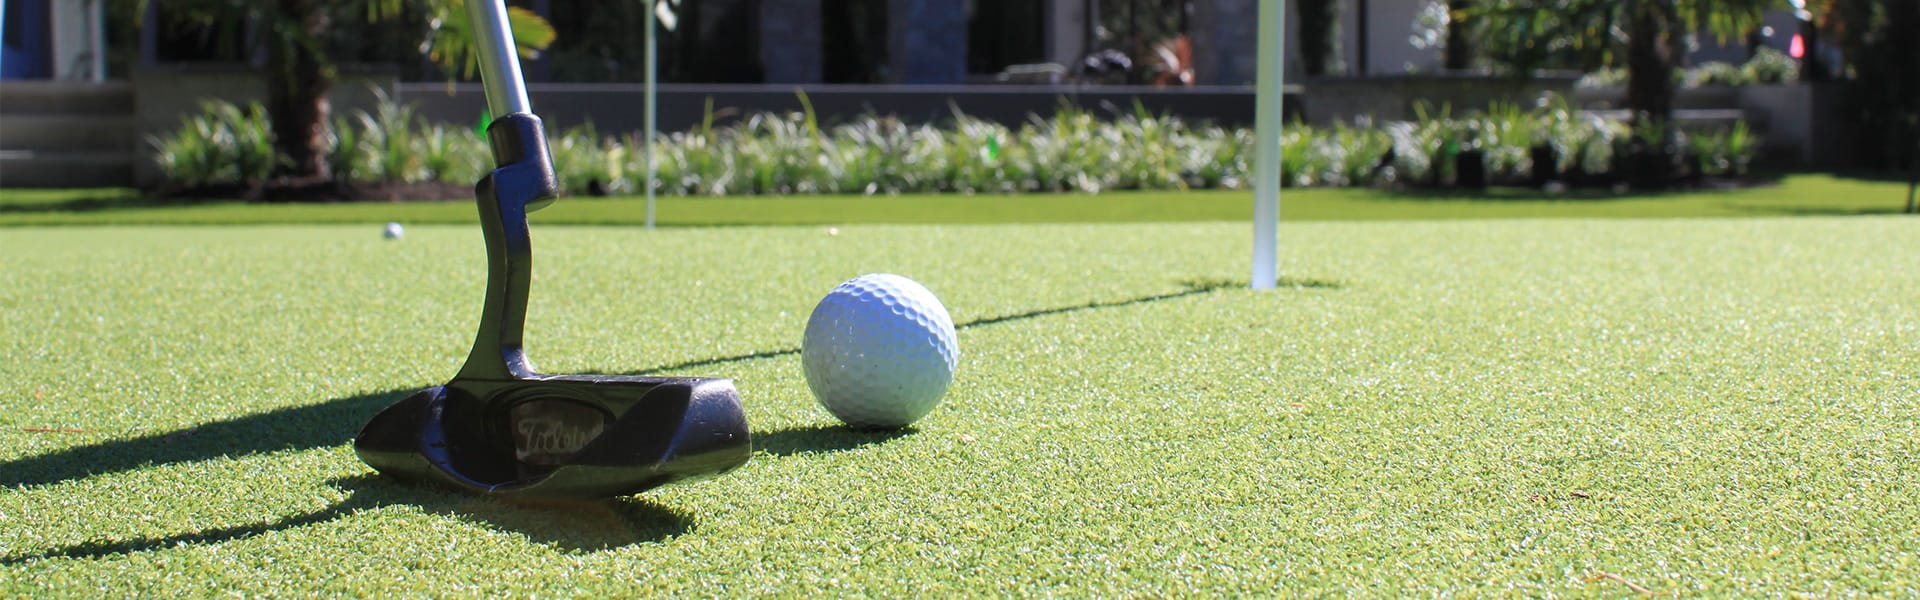 putting on artificial putting green grass in residential backyard